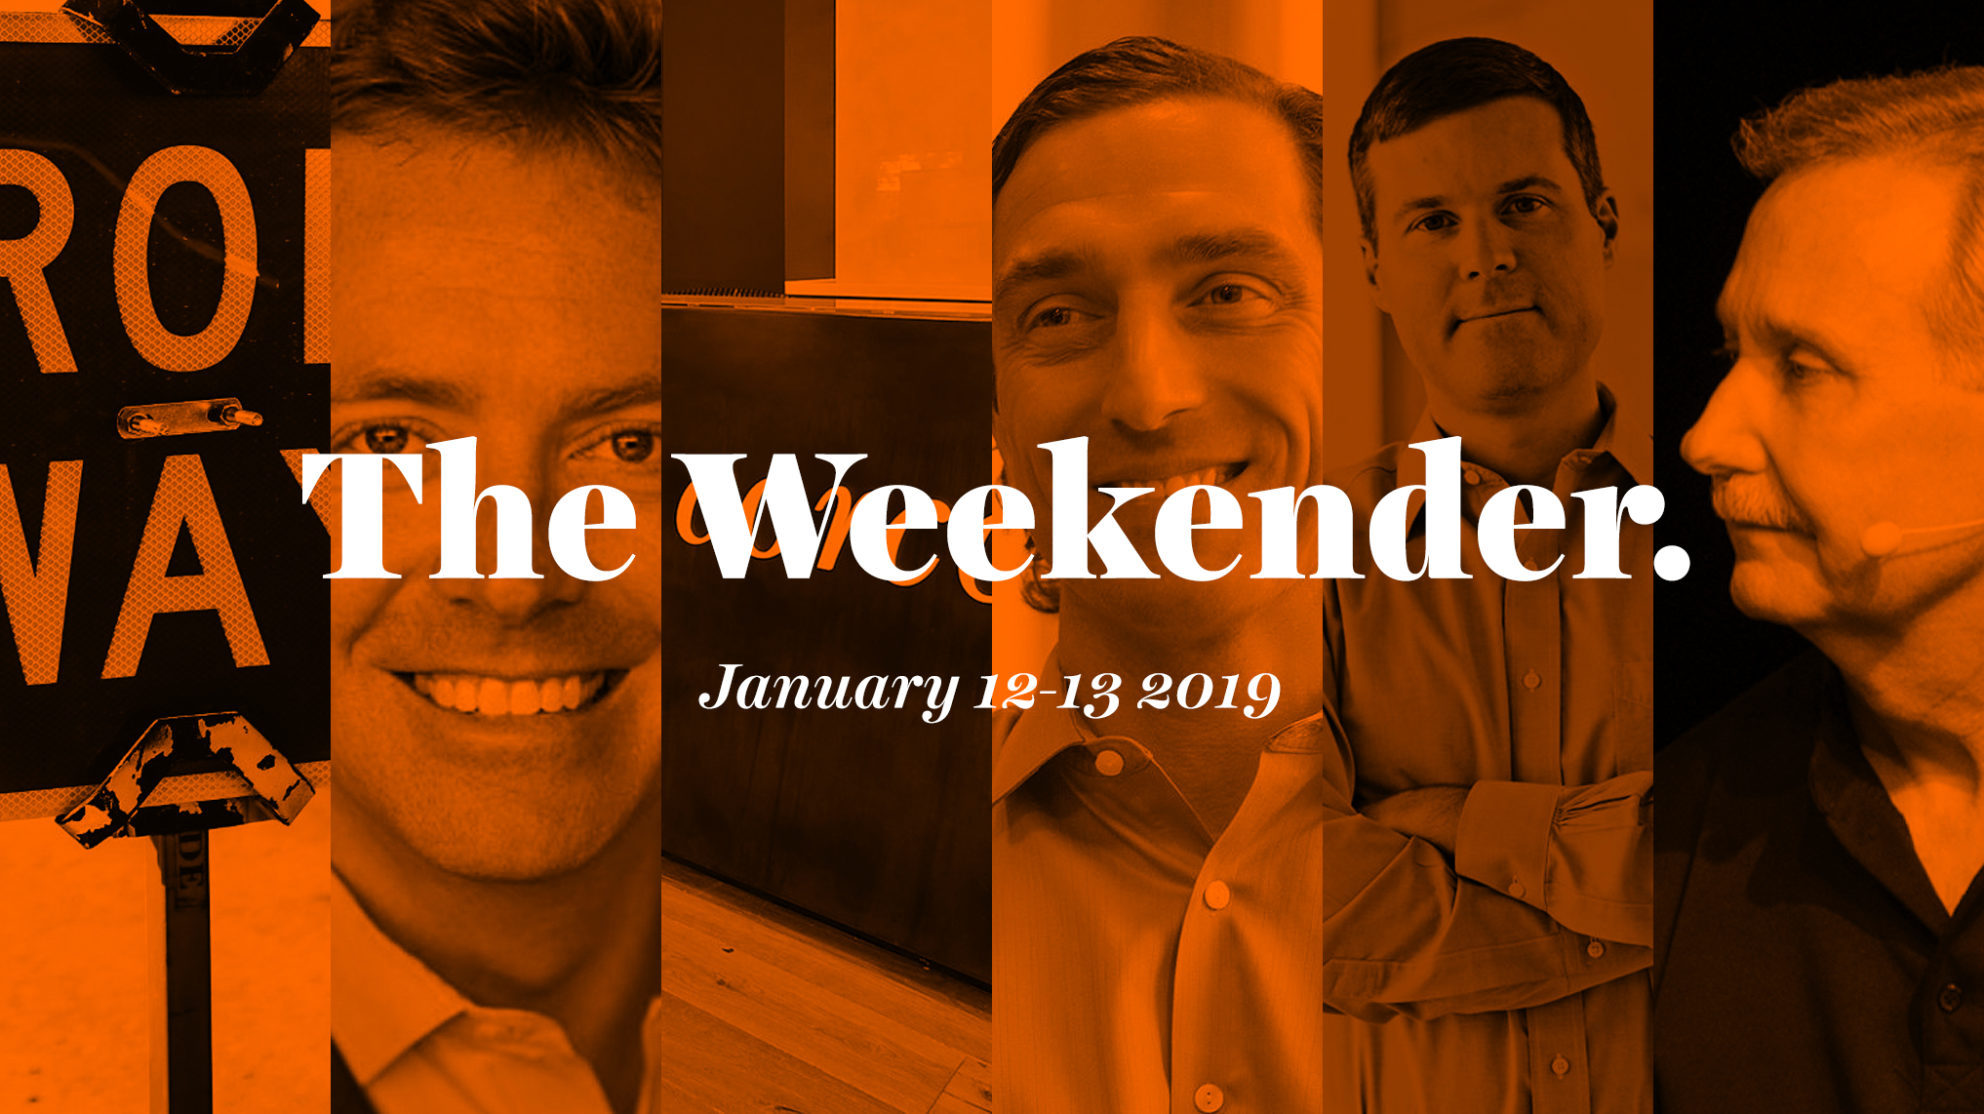 The Inman Weekender, January 12-13, 2019